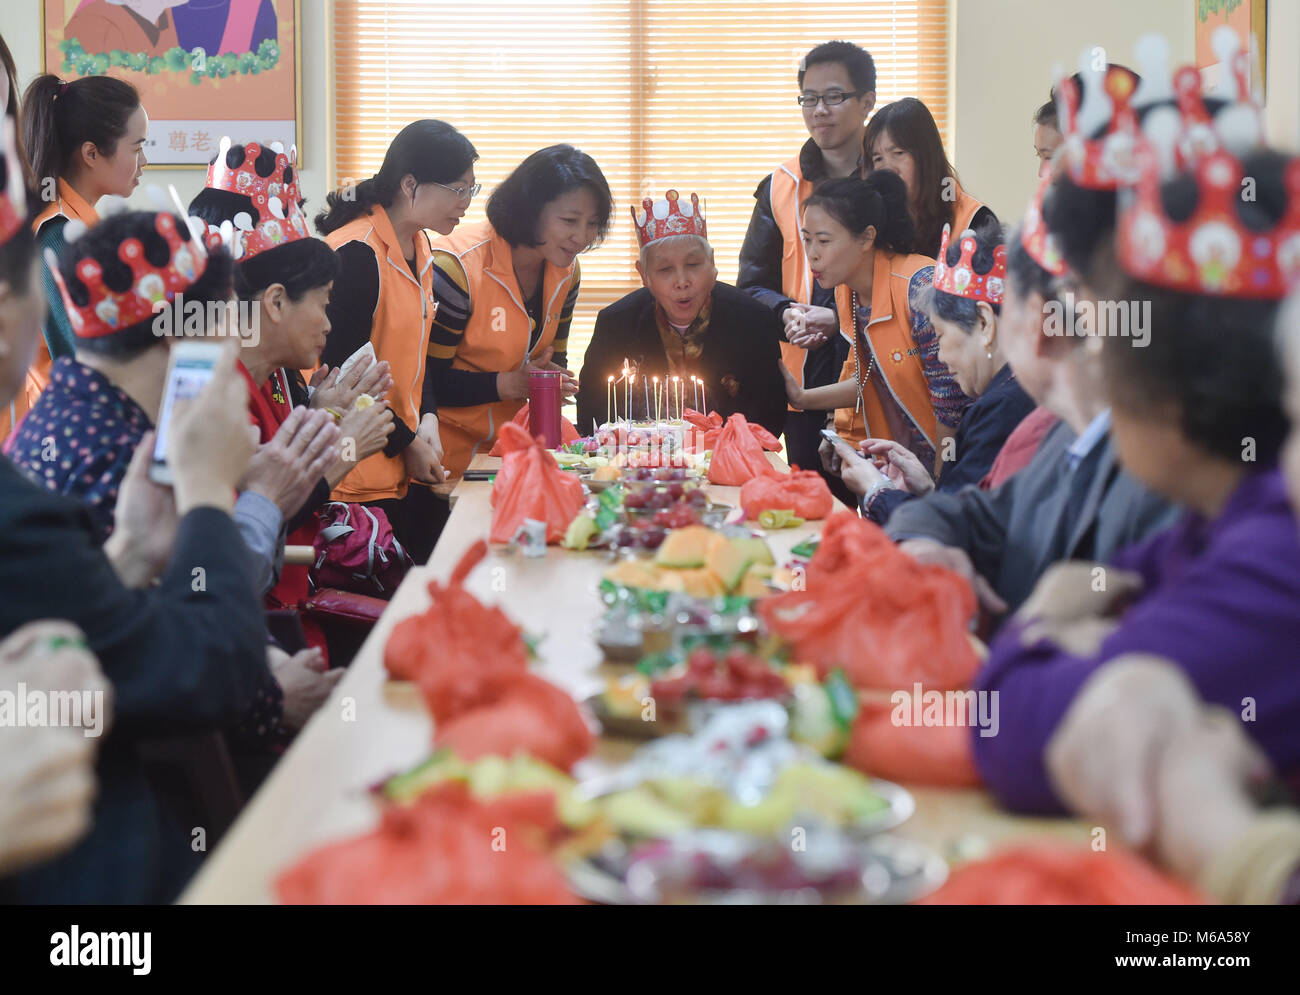 (180302) -- BEIJING, March 2, 2018 (Xinhua) -- Elders have a group birthday party in a nursing home in Fuzhou, capital - Stock Image